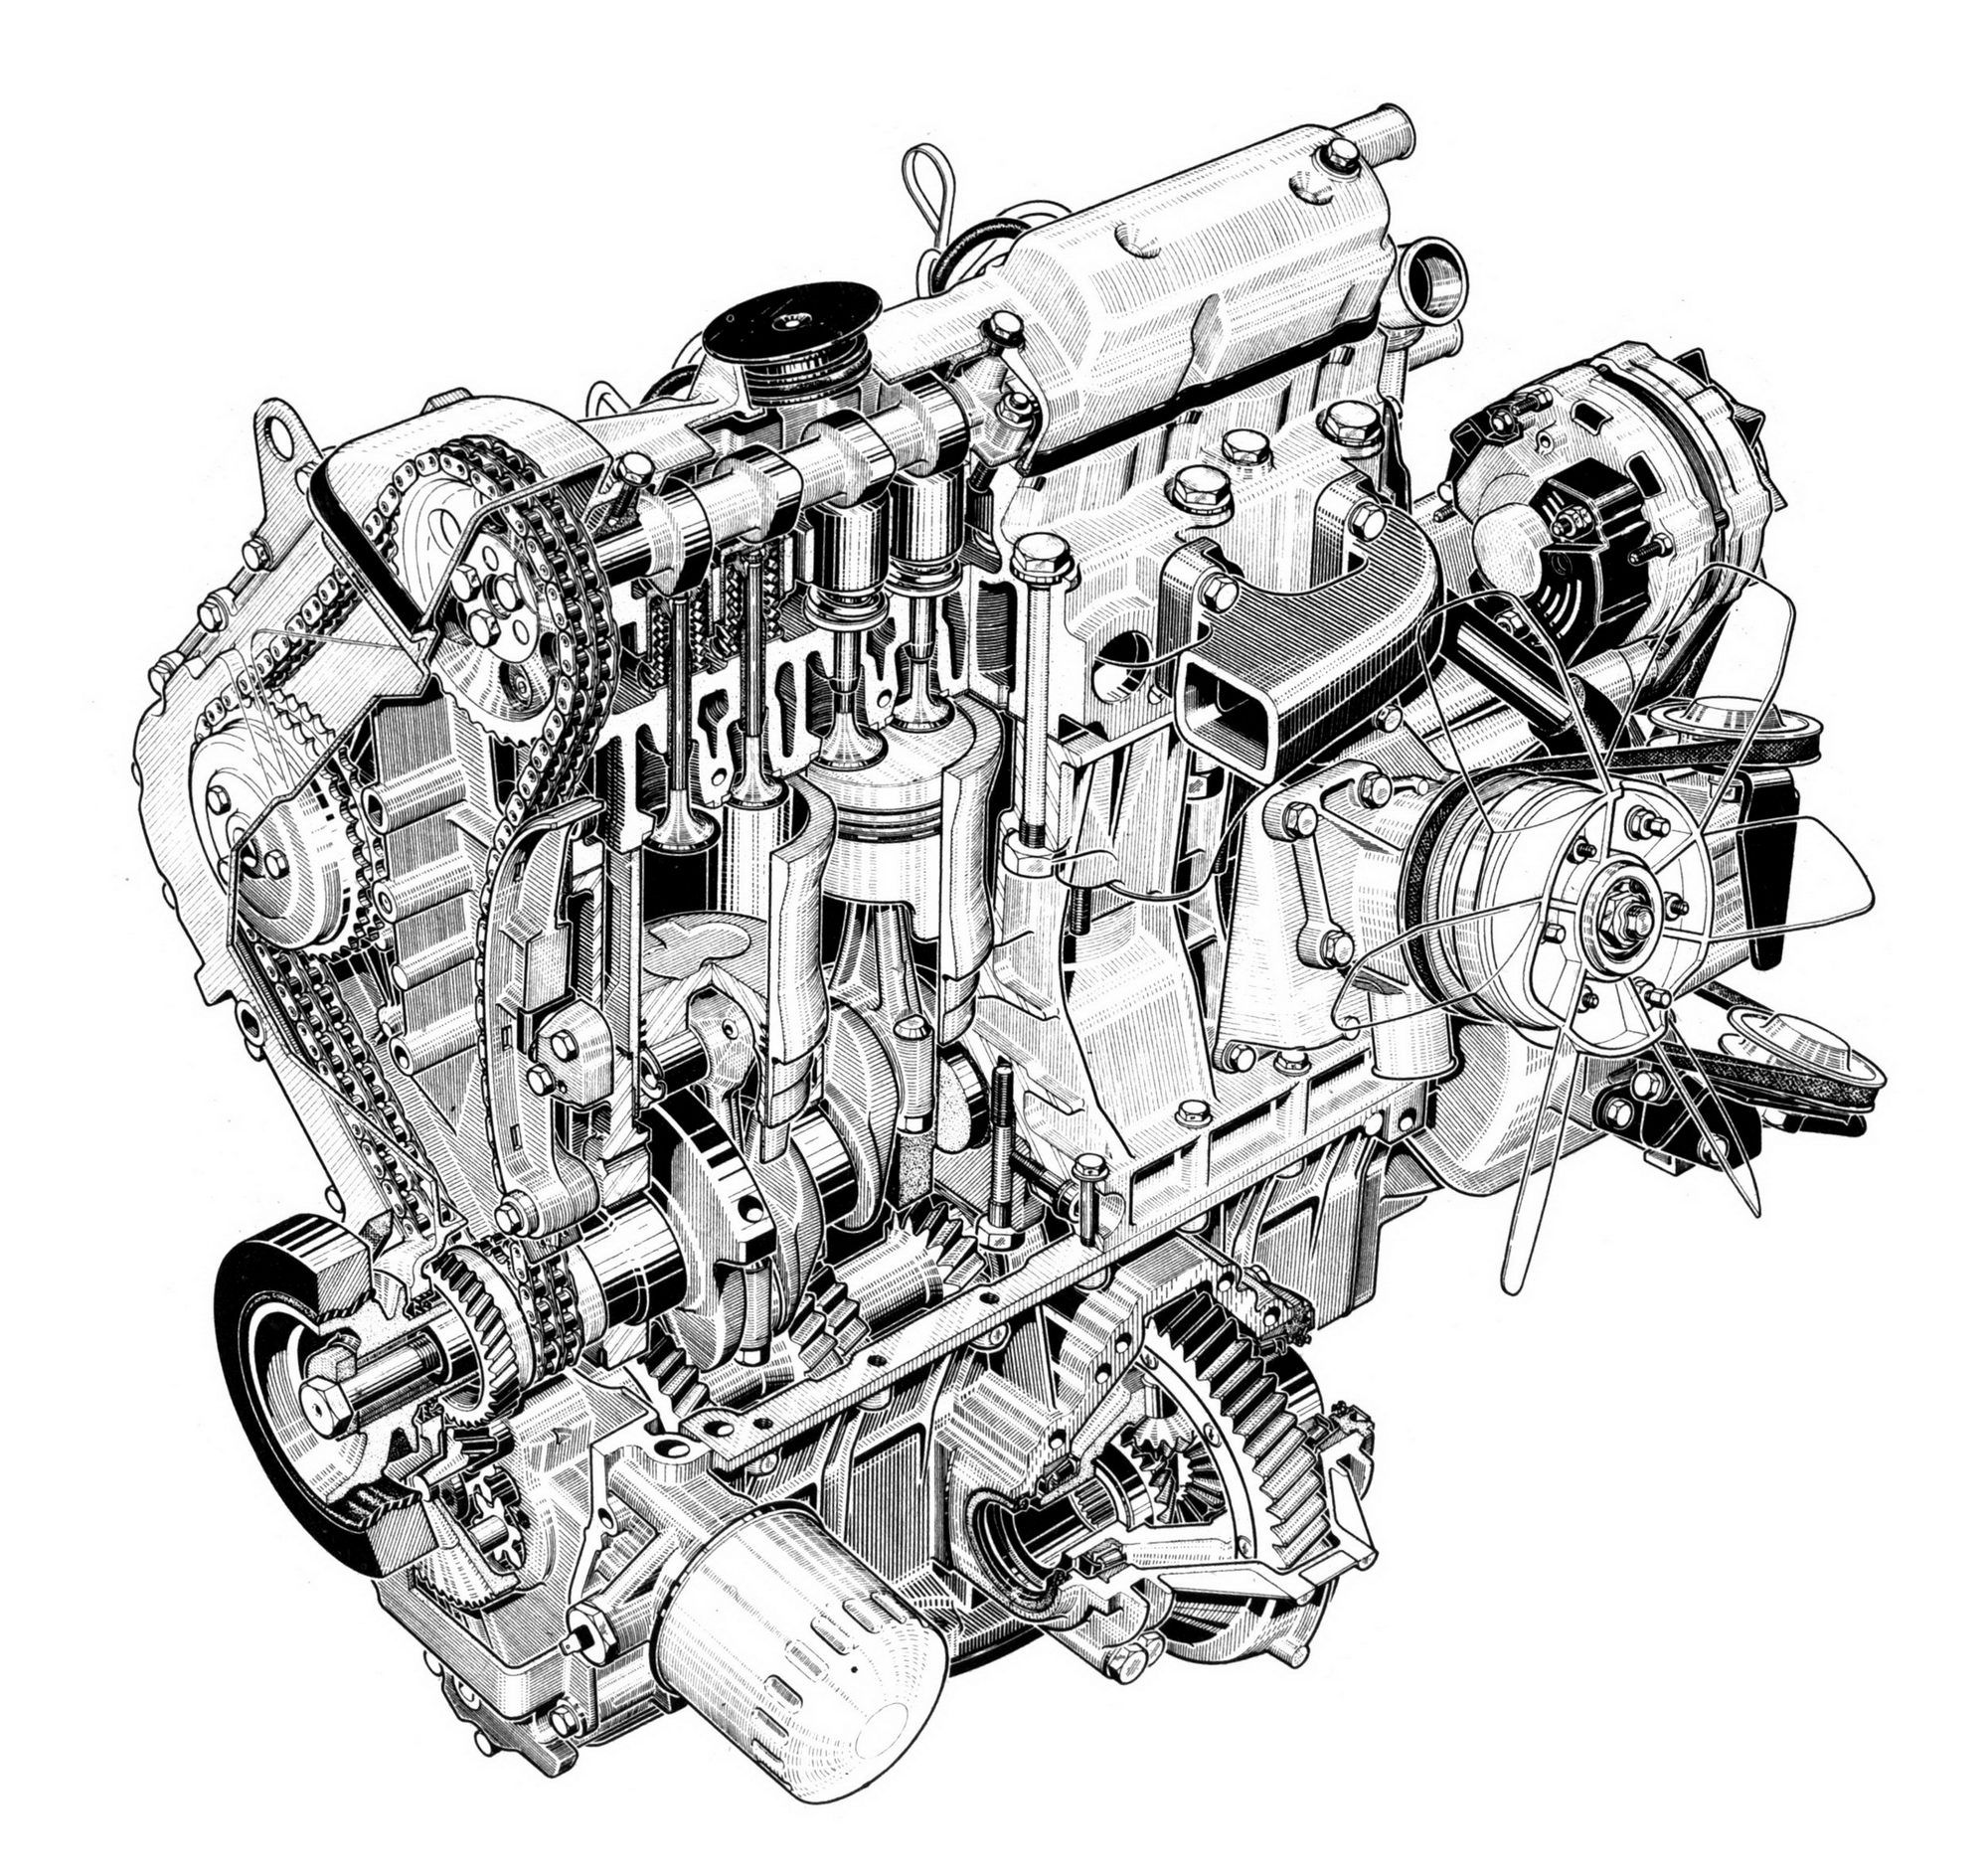 Peugeot Diesel Engine By Artist Unknown Cutaway Line Art - Cool decals for truckspeugeot cool promotionshop for promotional peugeot cool on